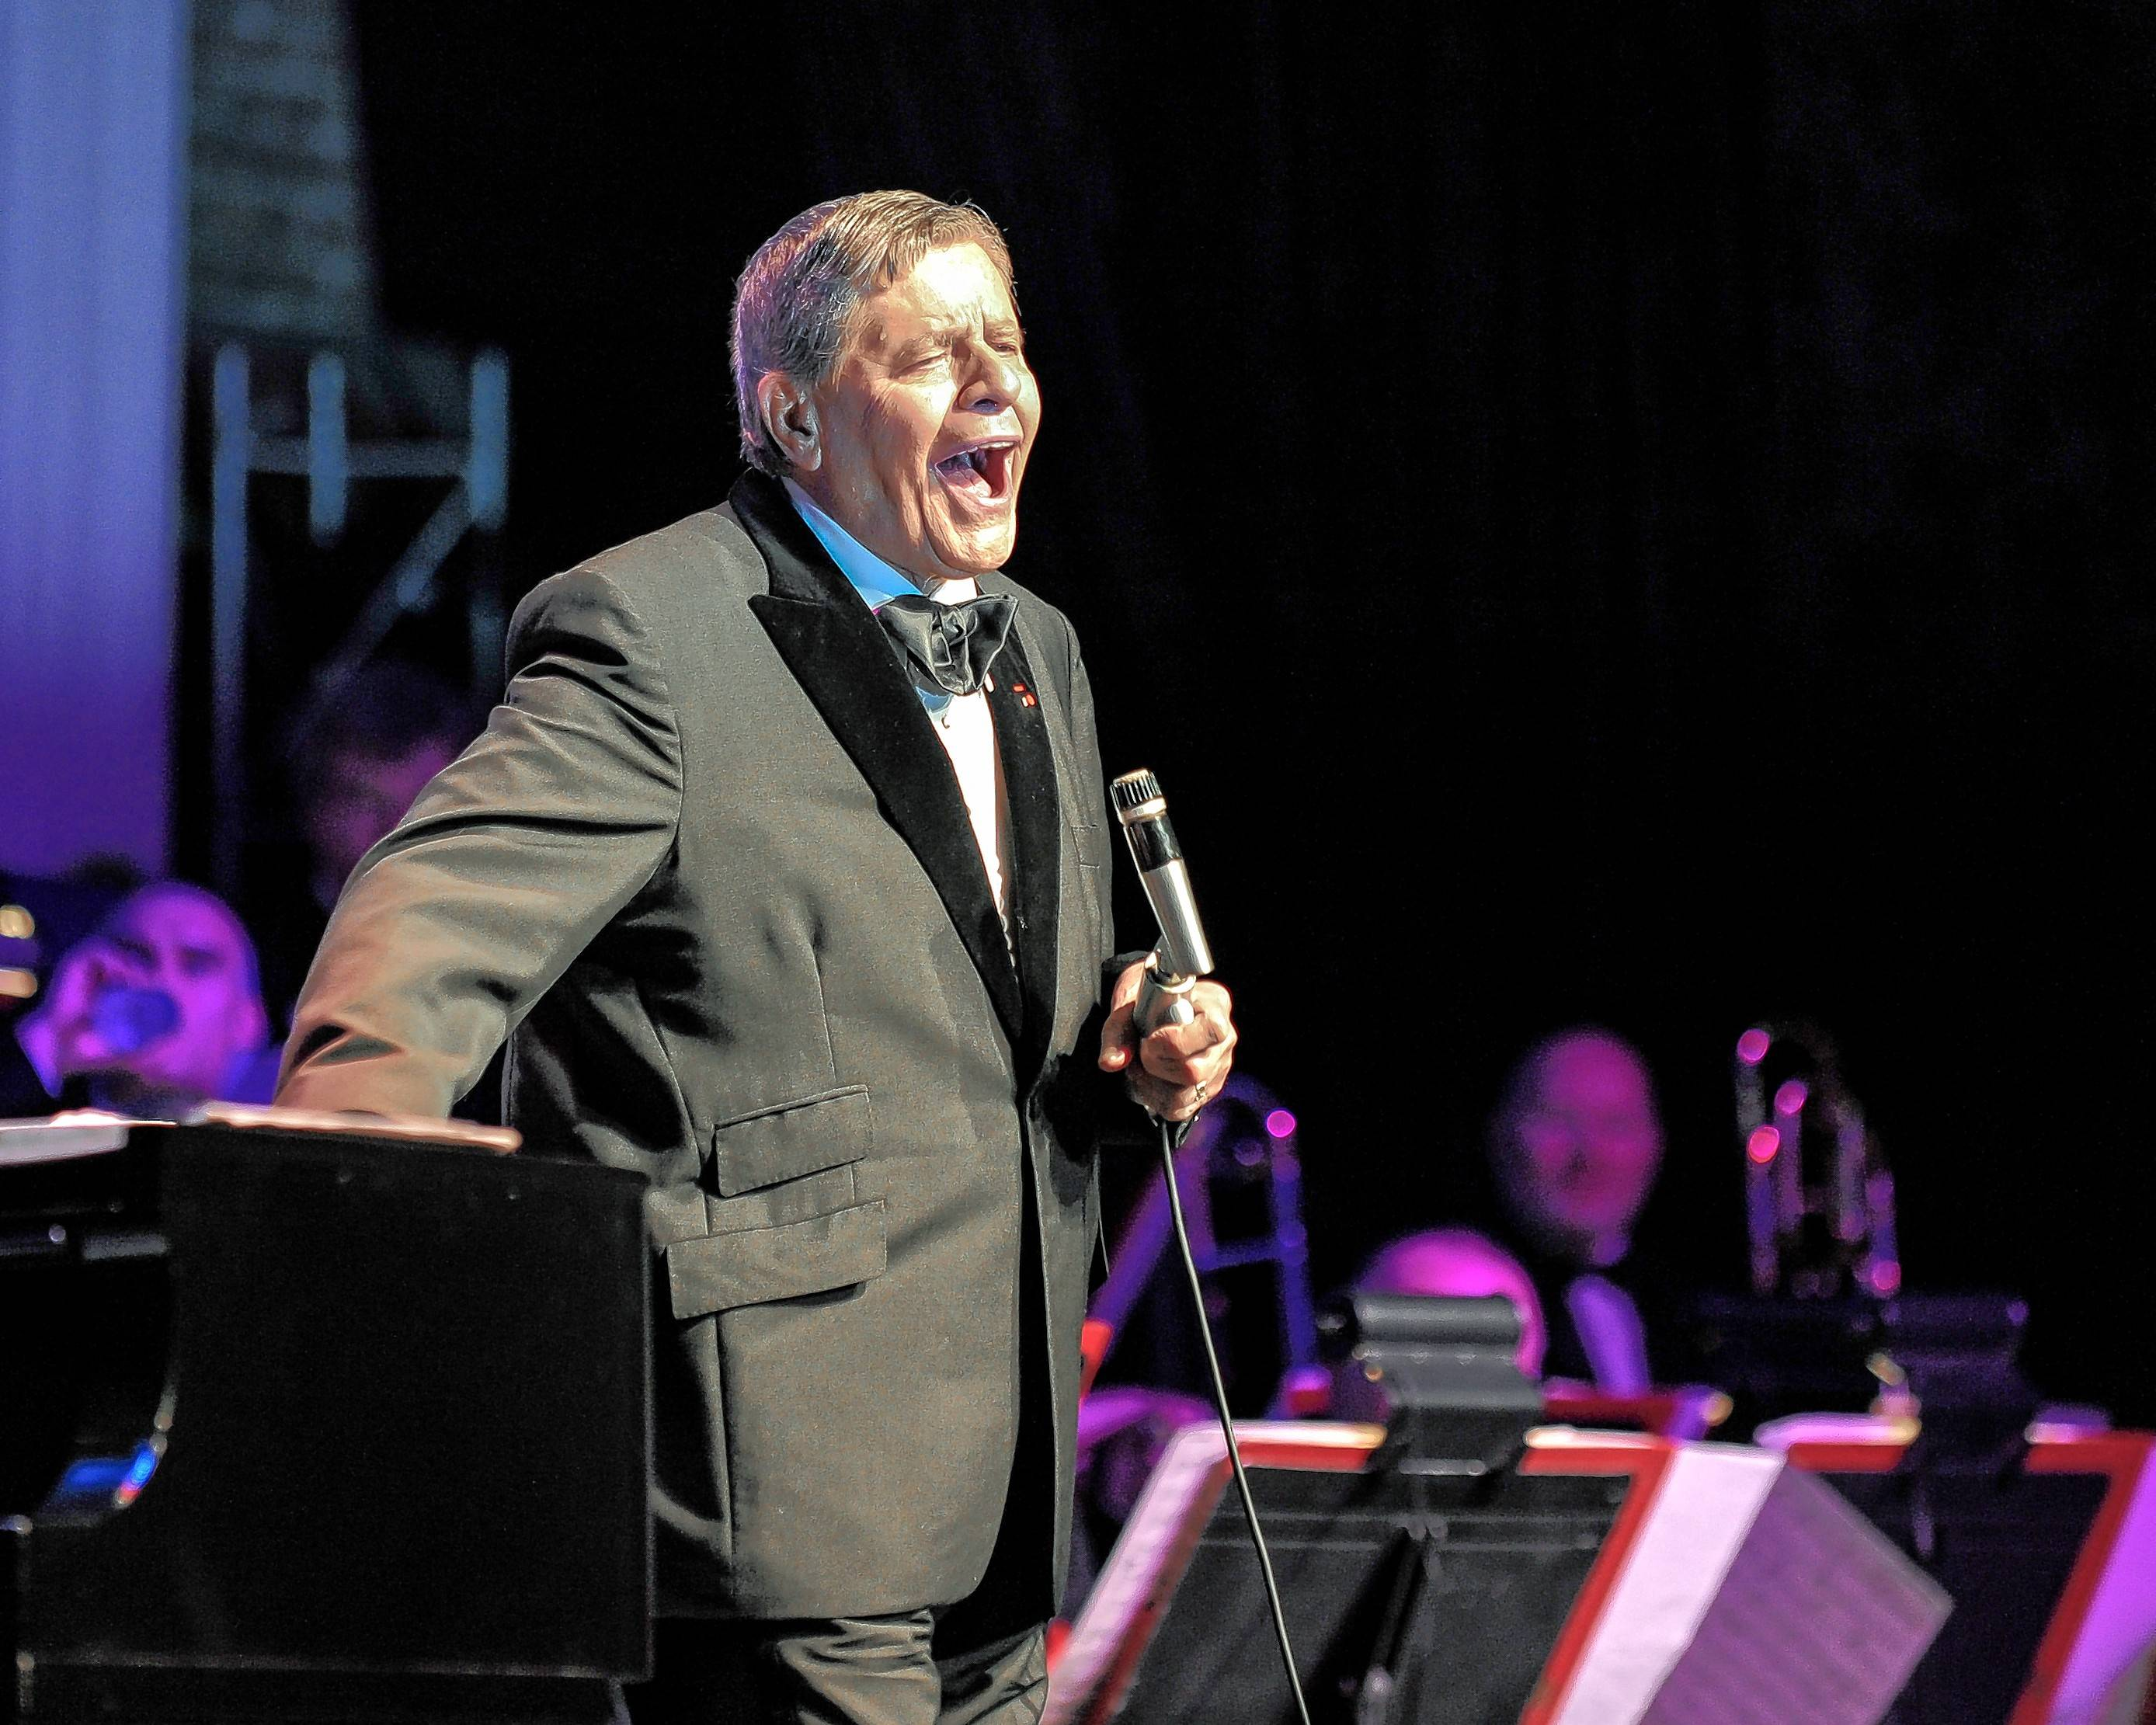 Ron Onesti treasures all the wonderful stories legendary entertainer Jerry Lewis shared with him the night Lewis performed at the Arcada Theatre in St. Charles.